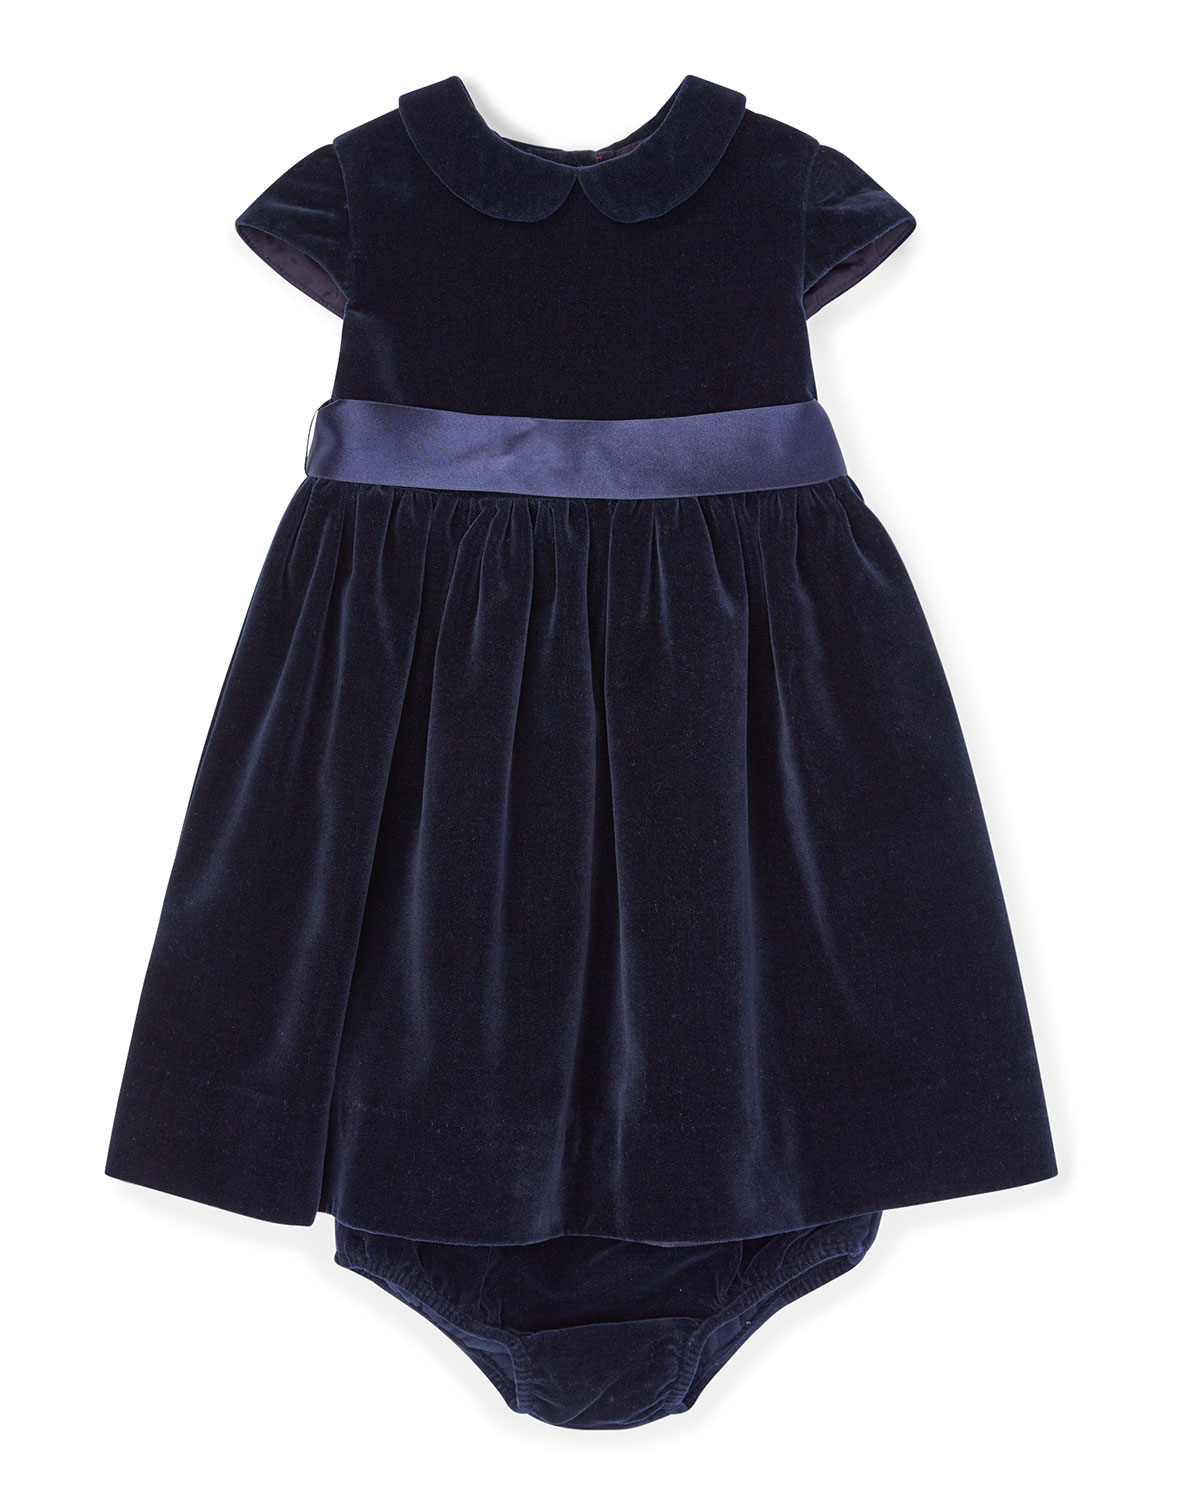 Velvet Short-Sleeve Dress w/ Matching Bloomers, Size 6-24 Months